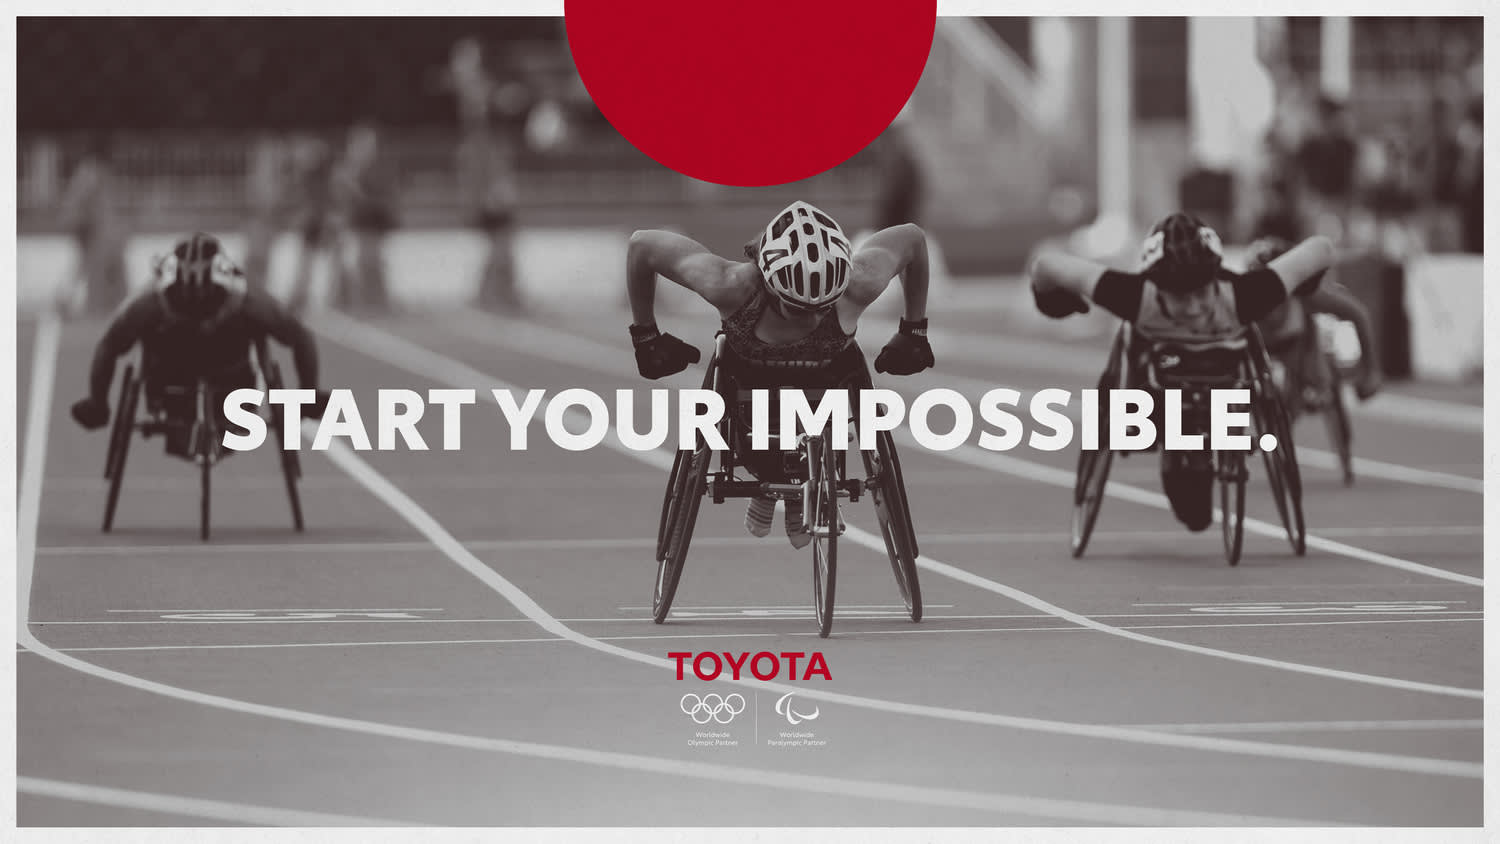 TOYOTA: START YOUR IMPOSSIBLE — TOKYO 2020 OLYMPICS